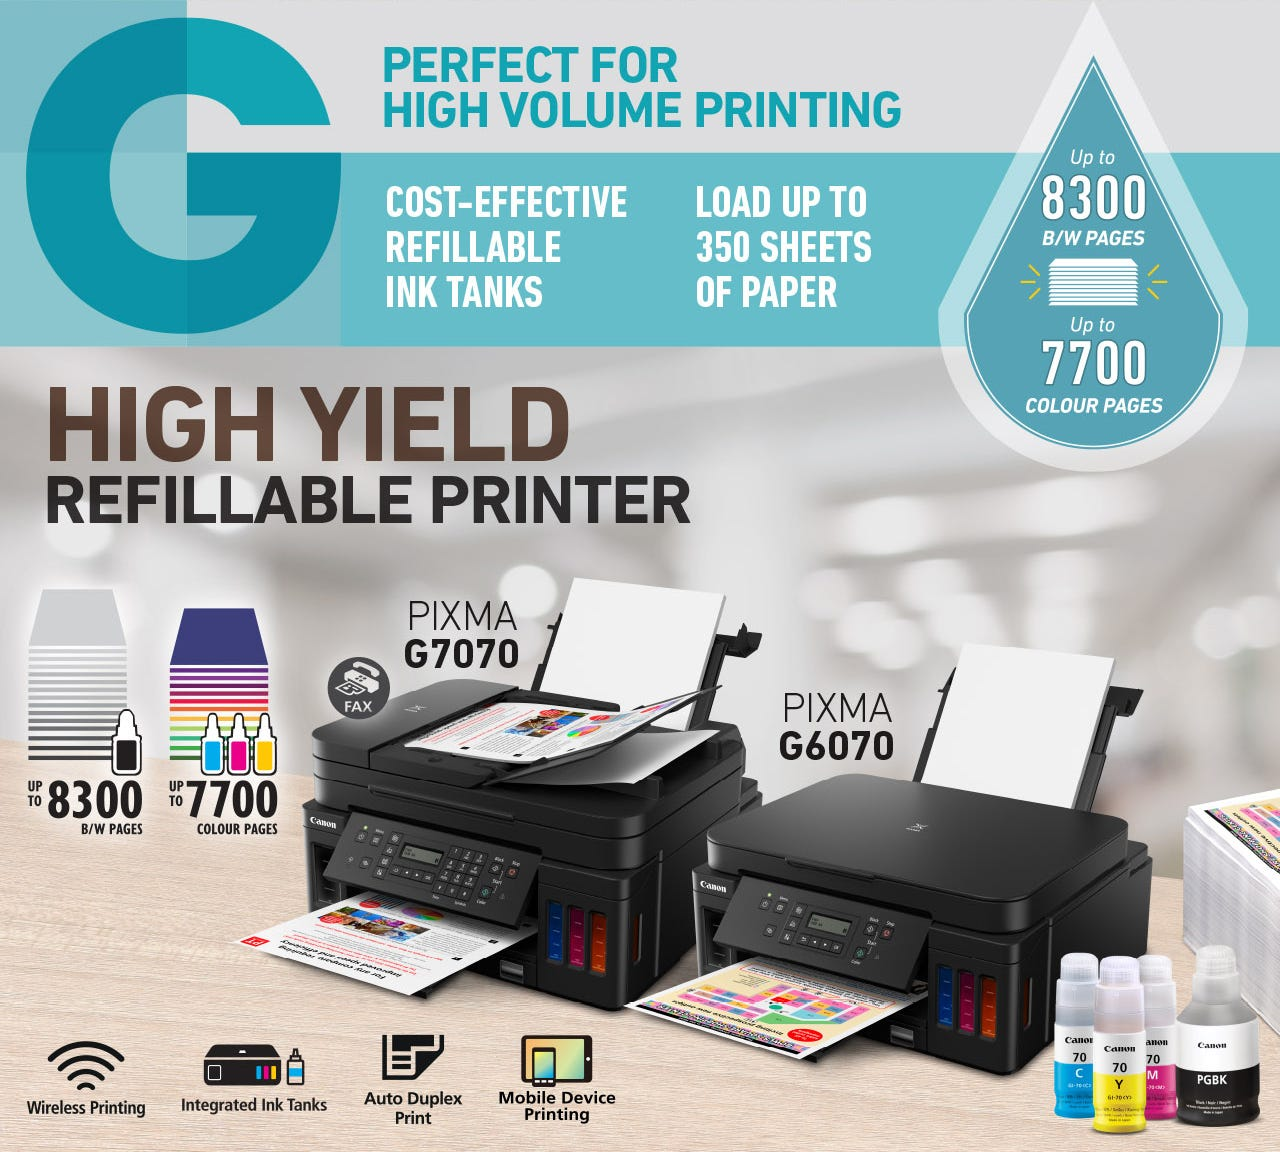 For High Volume Printing - PIXMA Gseries